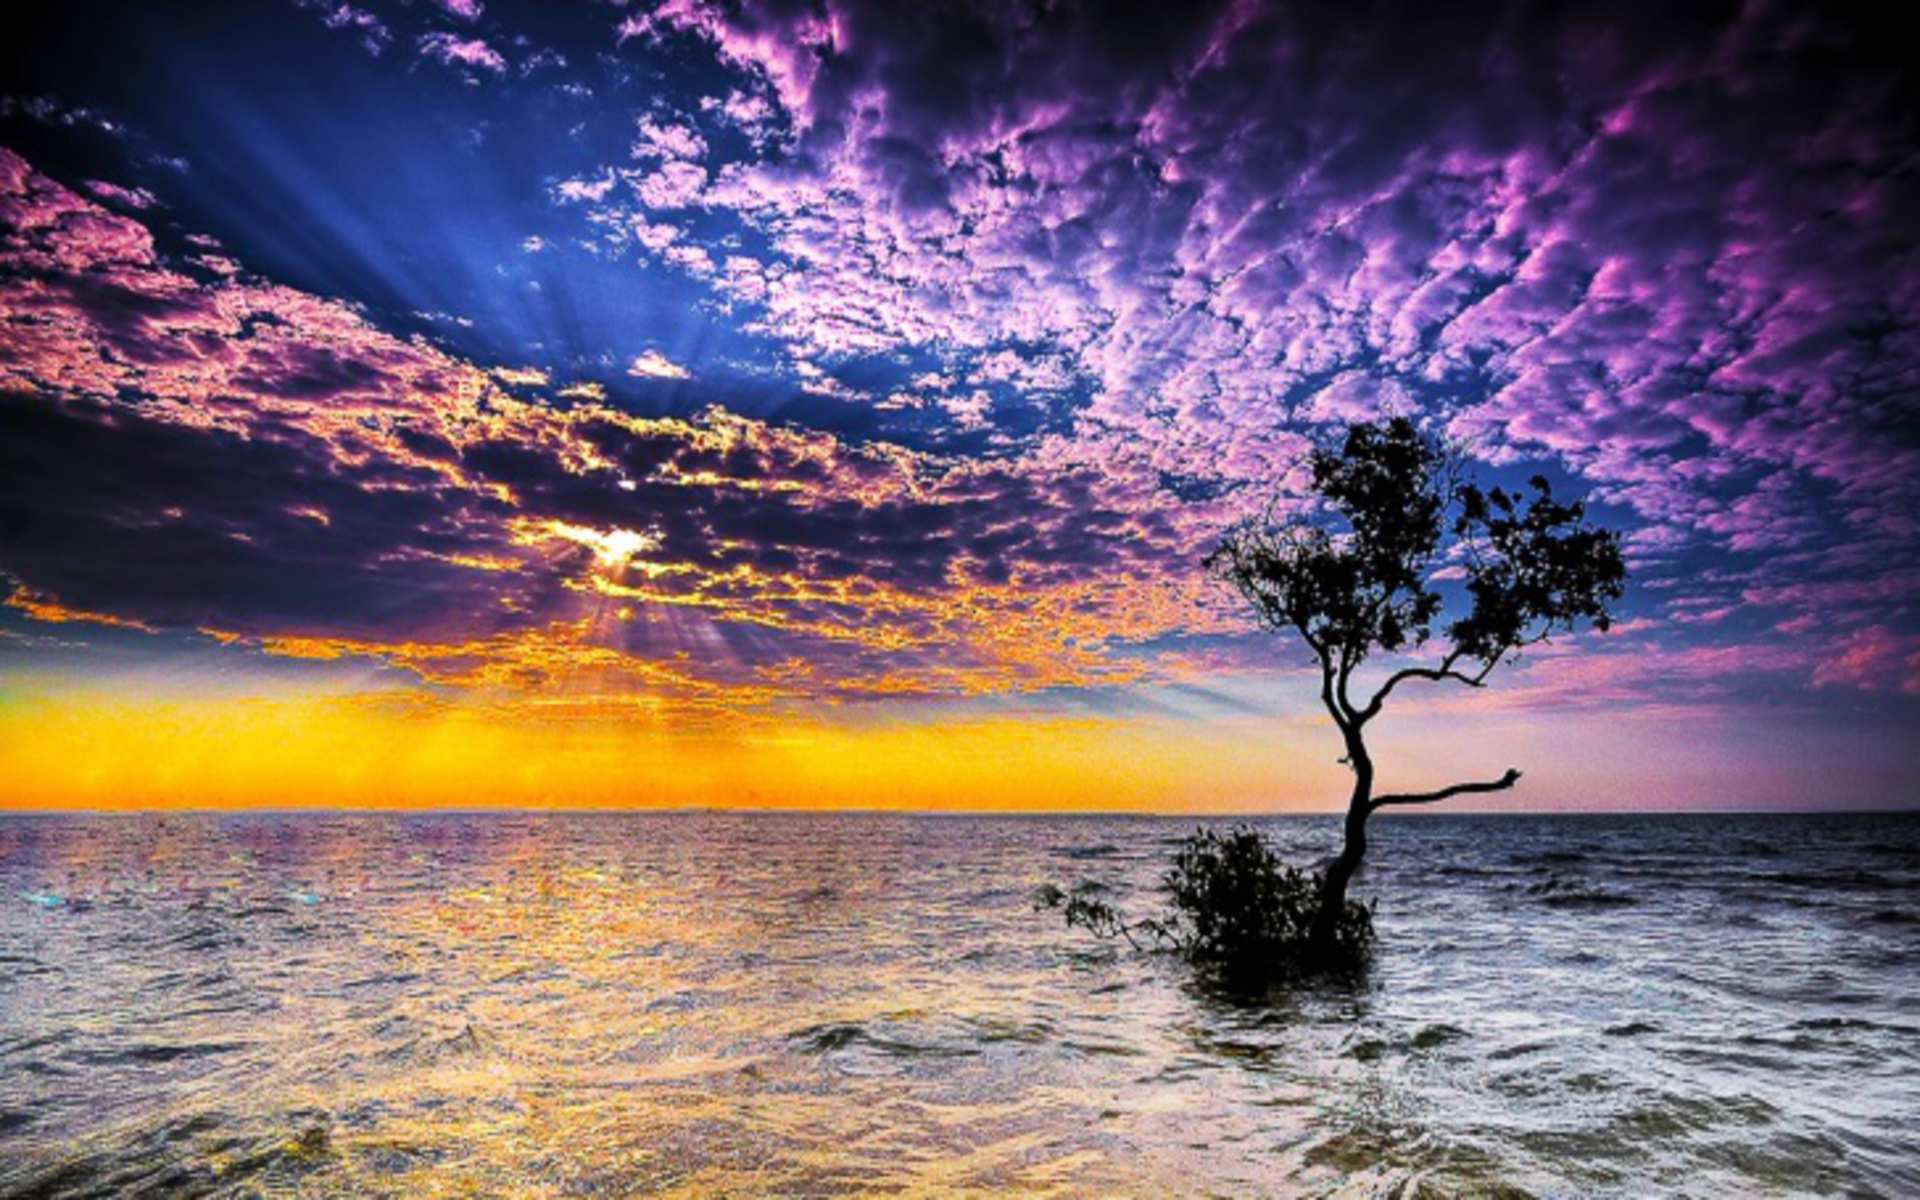 DOWNLOAD: magnificent sunset on sea free background 2560 x 1600